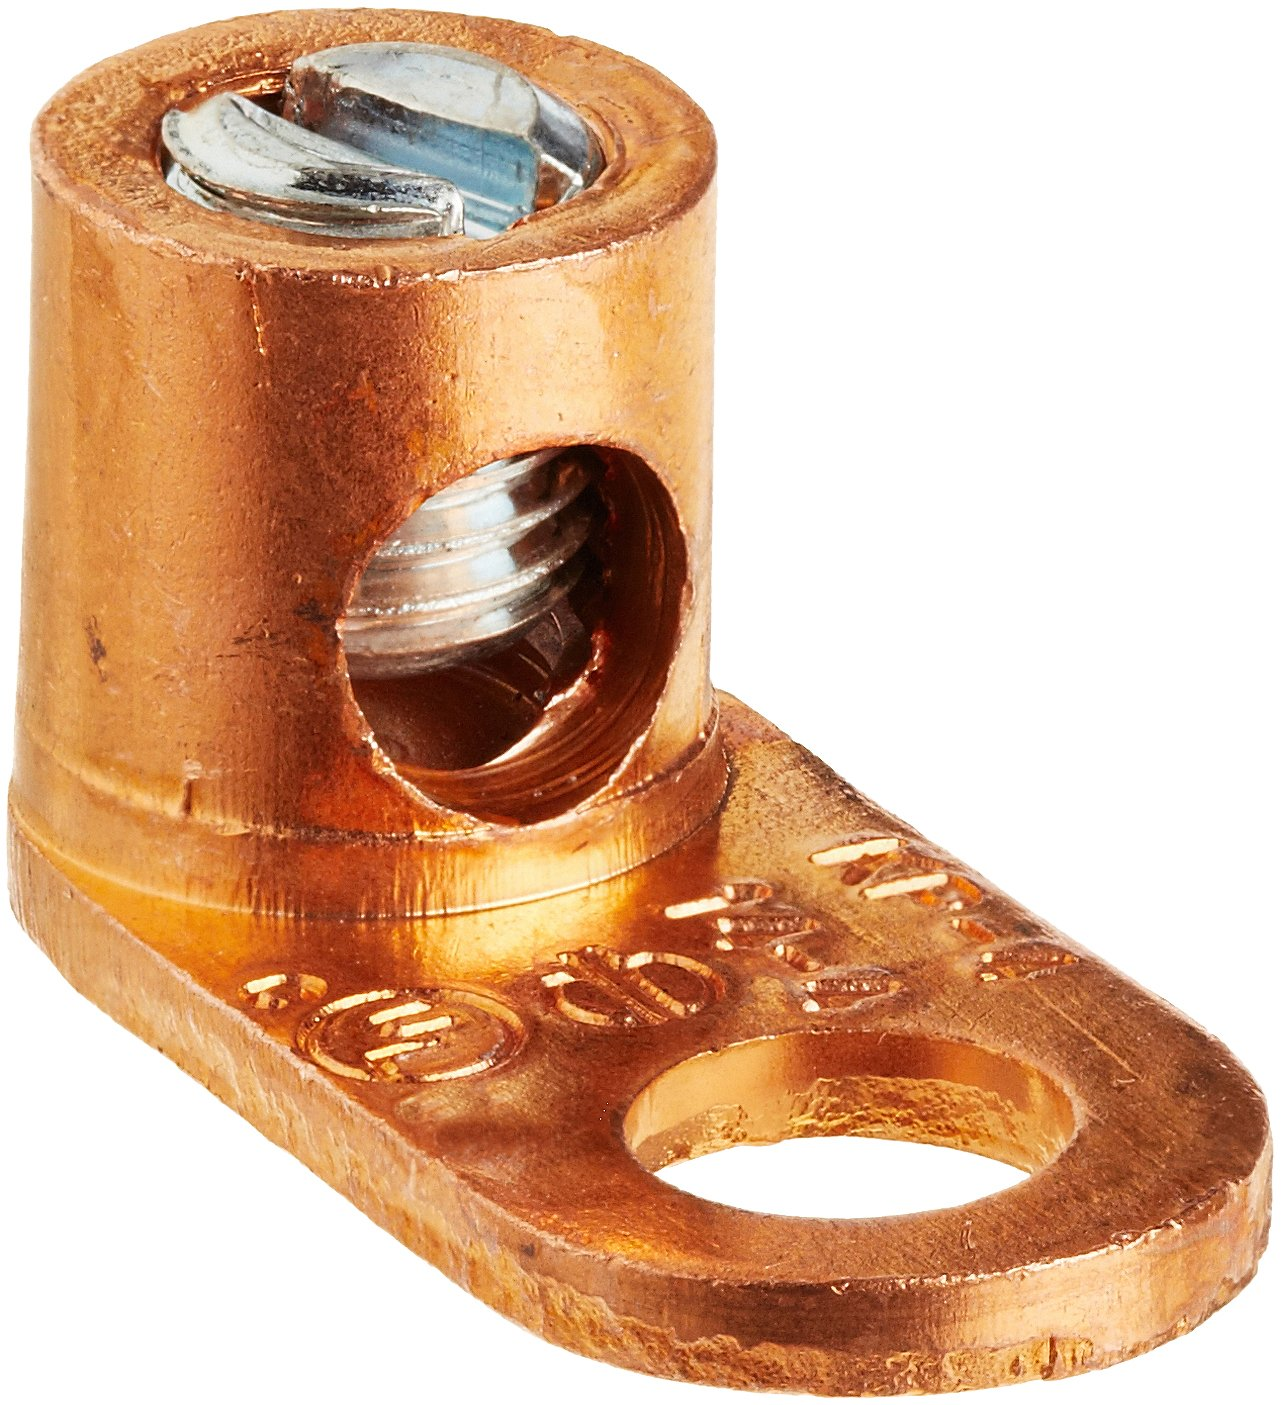 Split Bolt, Post and Tap Connector, Type TL Copper and Cast Bronze Terminal Lug, 14 sol - 4 str Wire Range, 1/4'' Bolt Hole Size, 1 Hole, 70 Amp NEC, 0.500'' Width, 0.563'' Height, 1.125'' Length by NSI